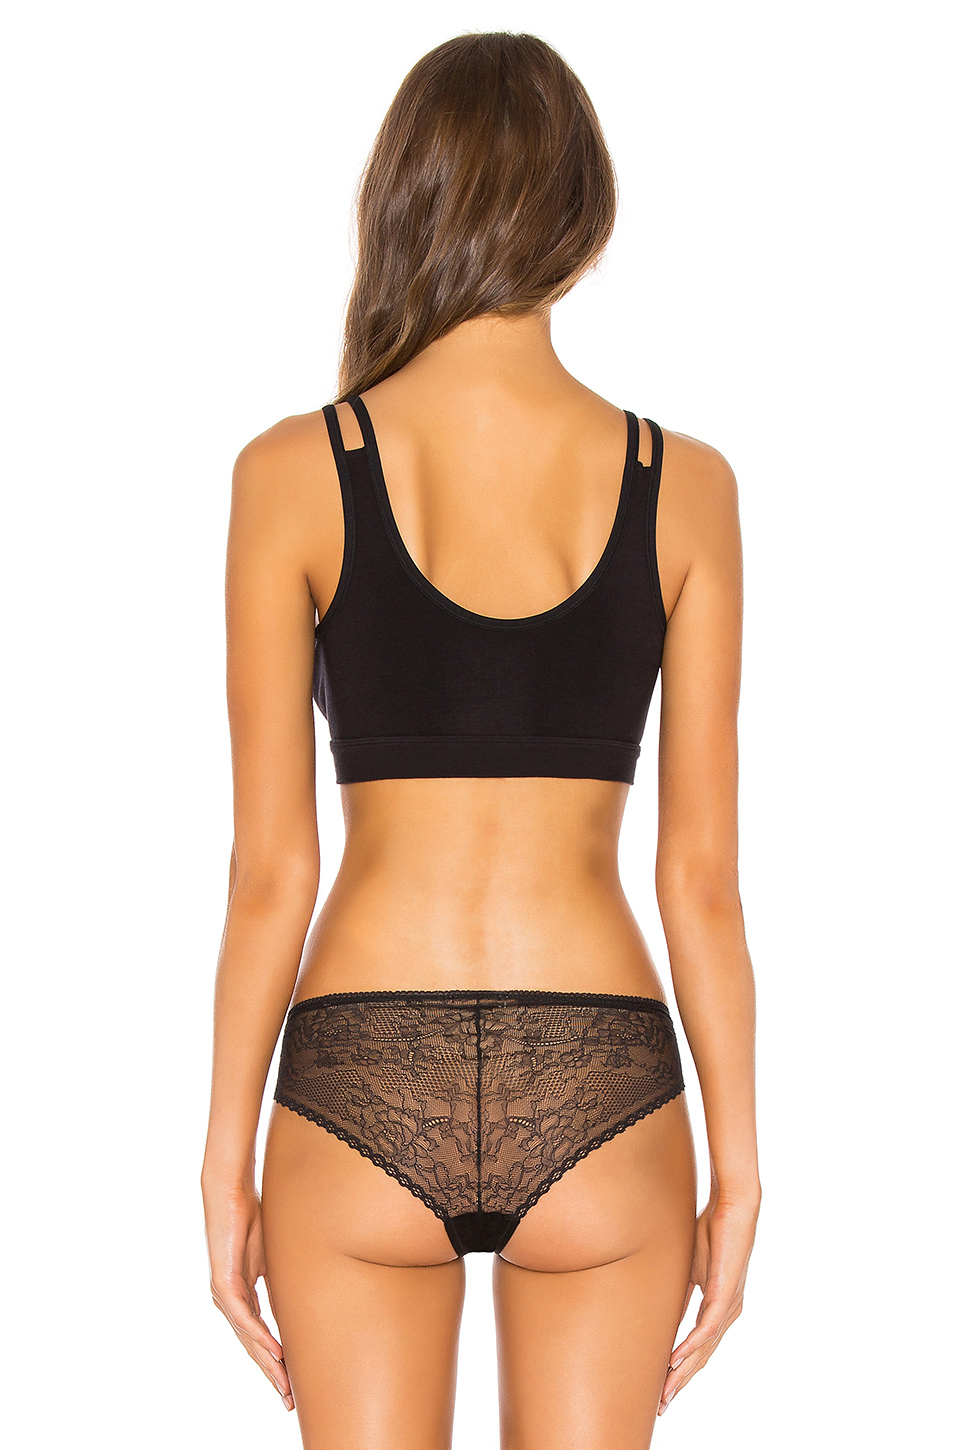 60afa706ac9e1 Buy Original Yummie by Heather Thomson Surplice Bralette at ...